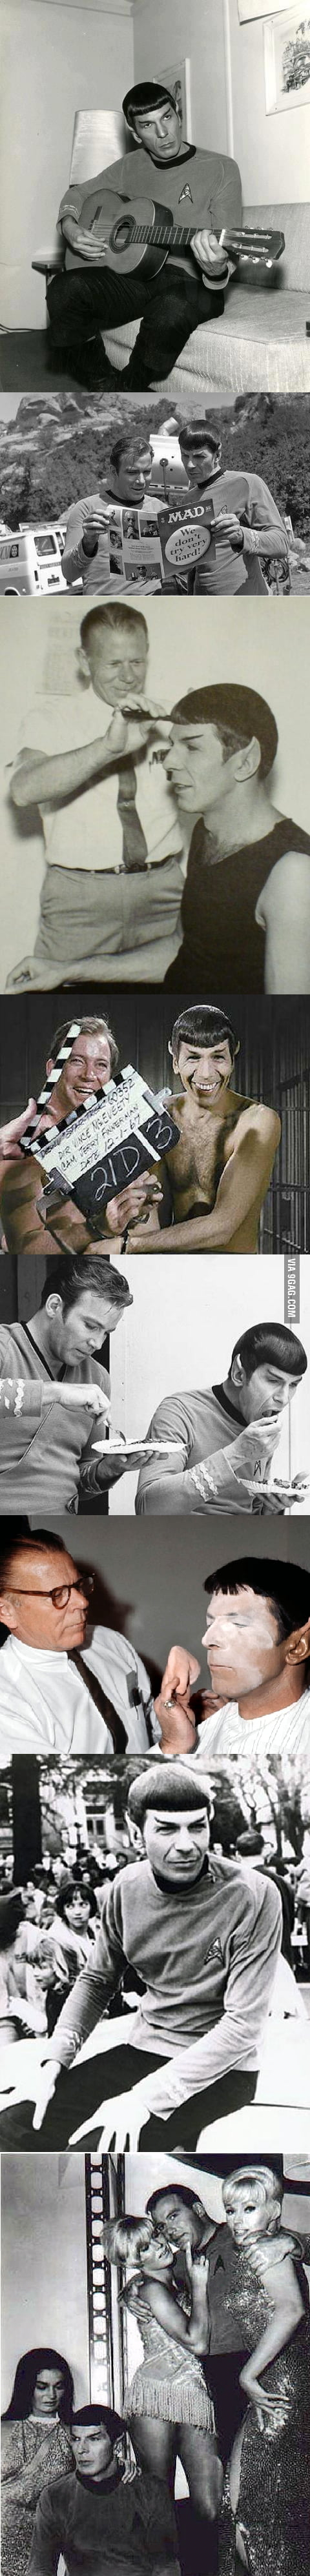 Star Trek Cool Photos